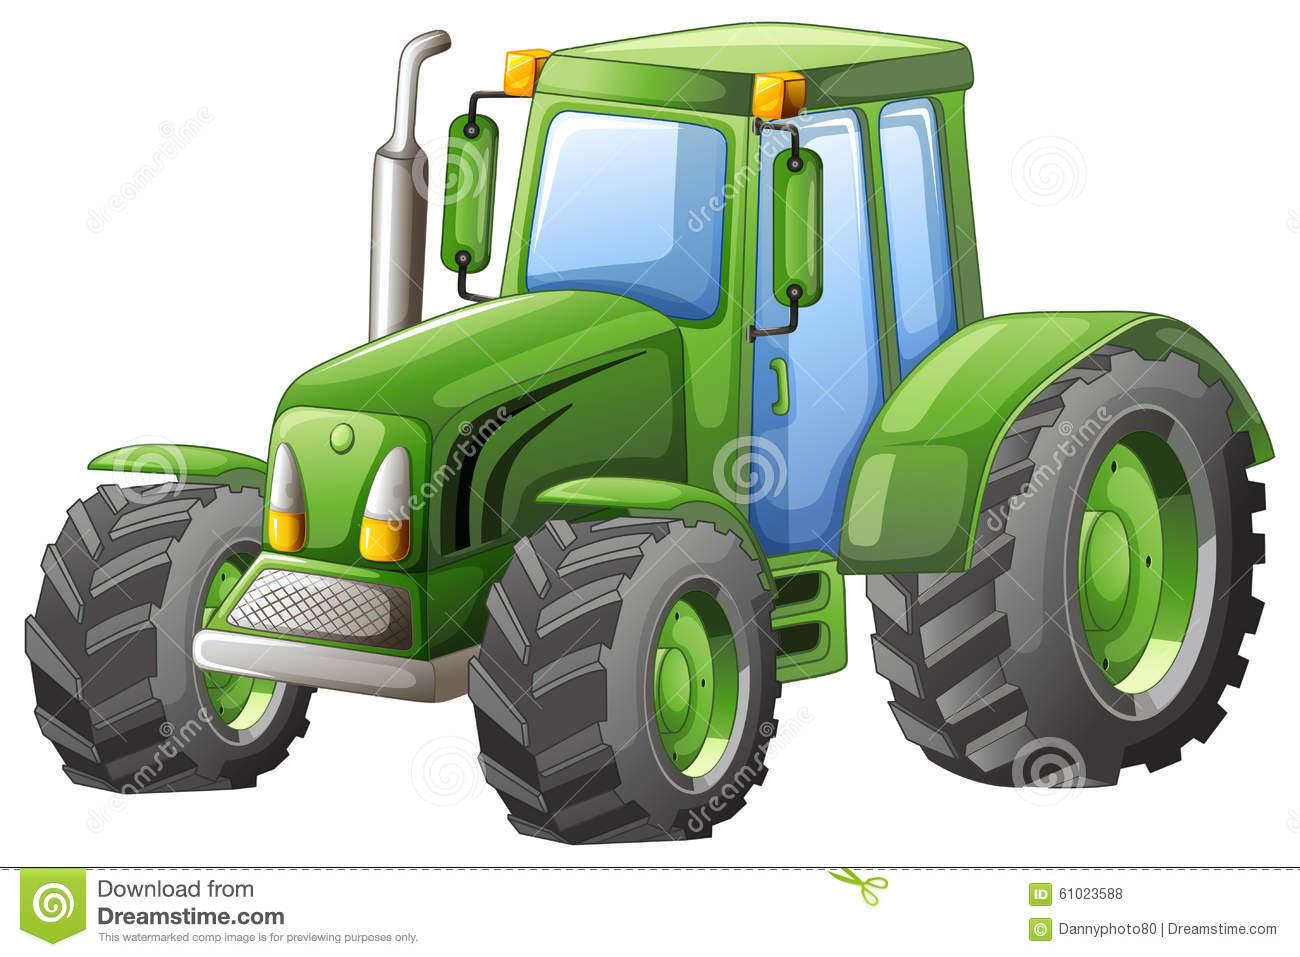 Large Tractor Wheels : Green tractor with big wheels stock illustration image